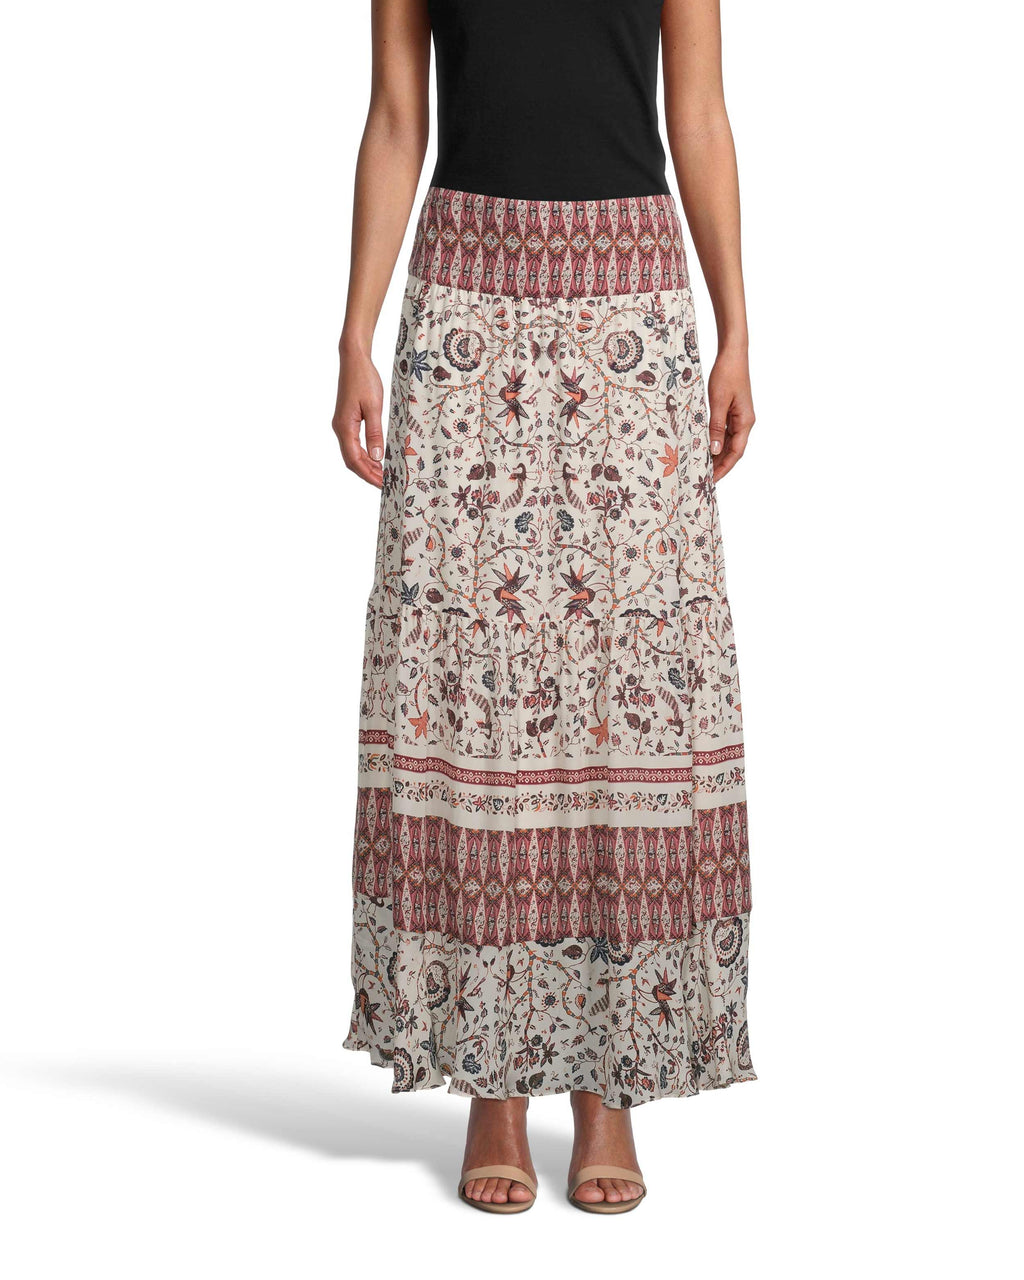 CS18687 - JAKARTA PRINT MAXI SKIRT - bottoms - skirts - Boho chic at it's finest, this ankle length maxi skirt is designed in our bold jakarta print in lightweight silk. The contrasting prints are the perfect added detail to this classic silhouette. Add 1 line break Stylist Tip: Pair with one of our cashmere sweaters or a white tee.